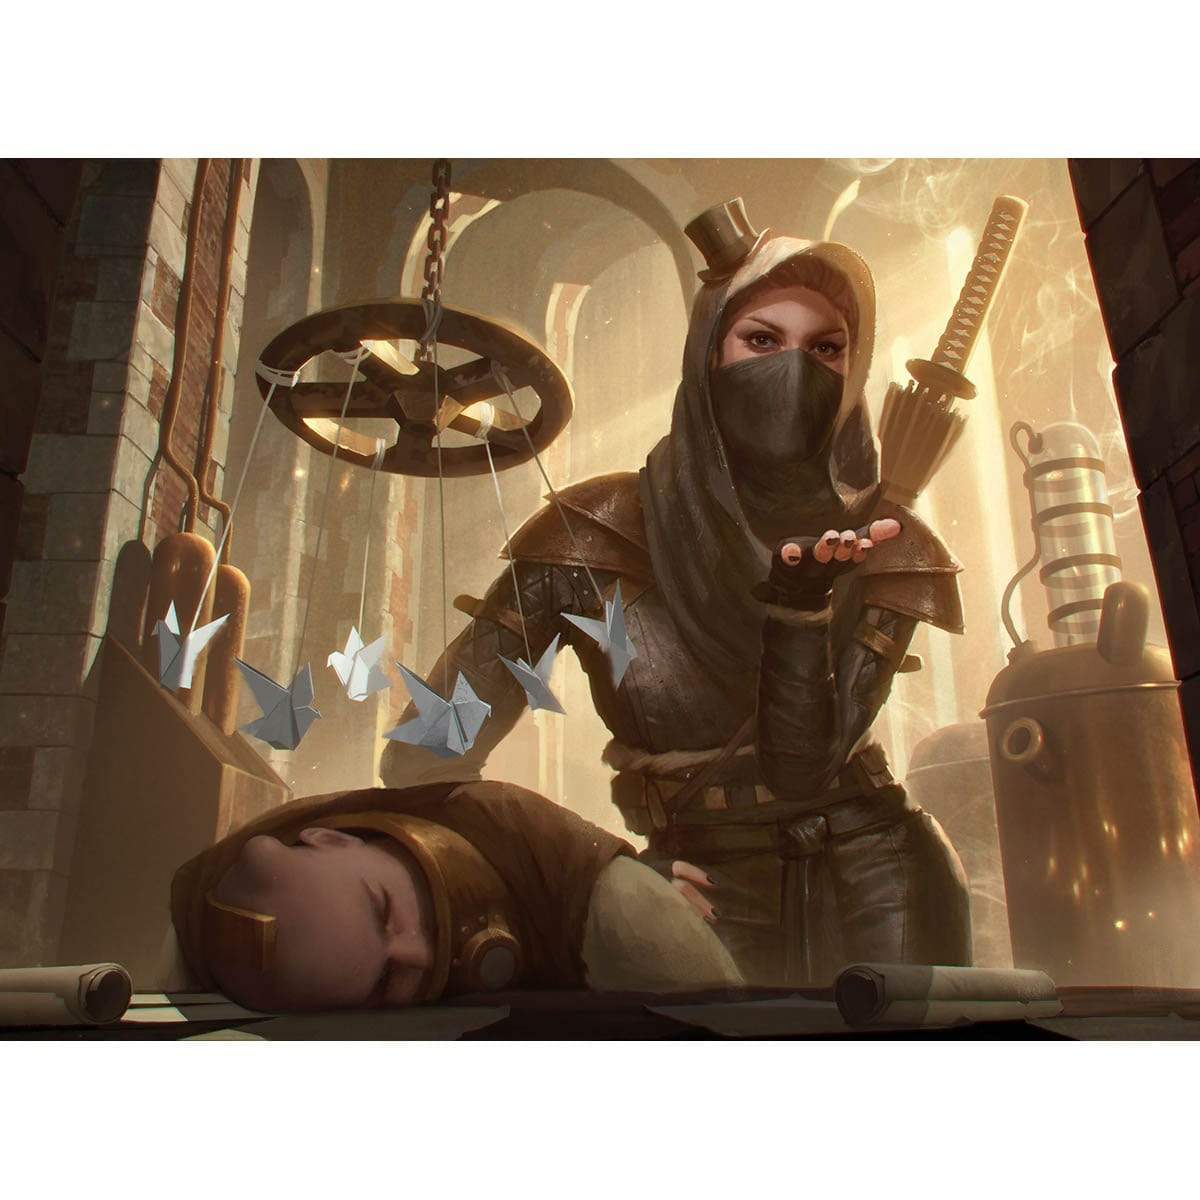 Overt Operative Print - Print - Original Magic Art - Accessories for Magic the Gathering and other card games